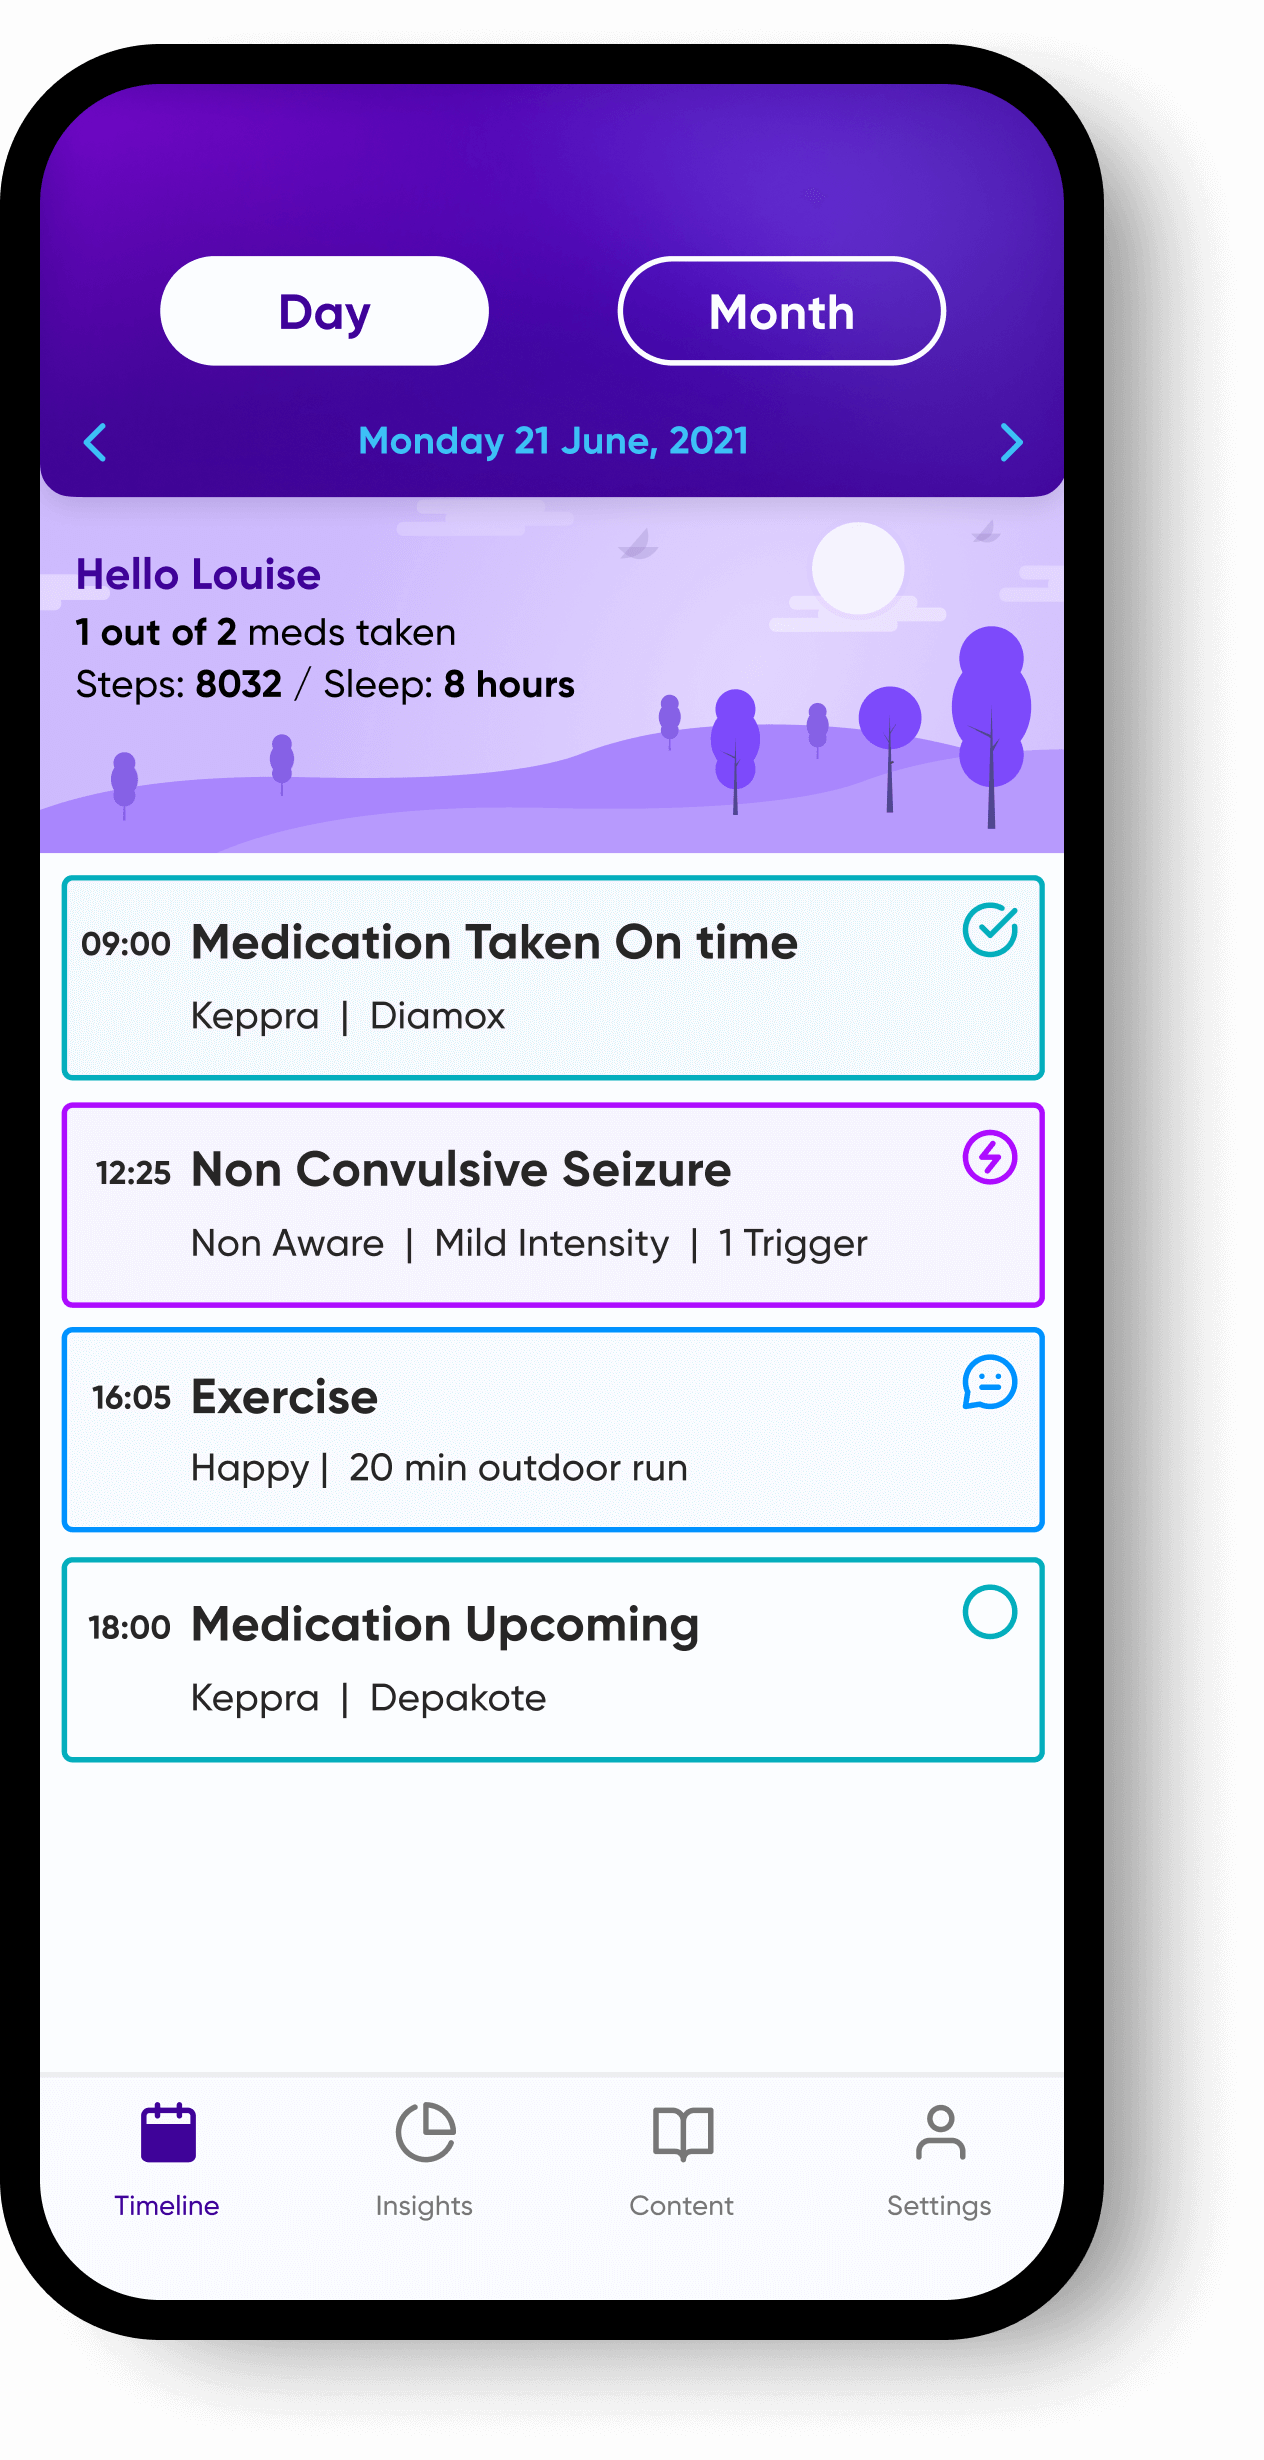 Timeline view from within the epilepsy app, Epsy